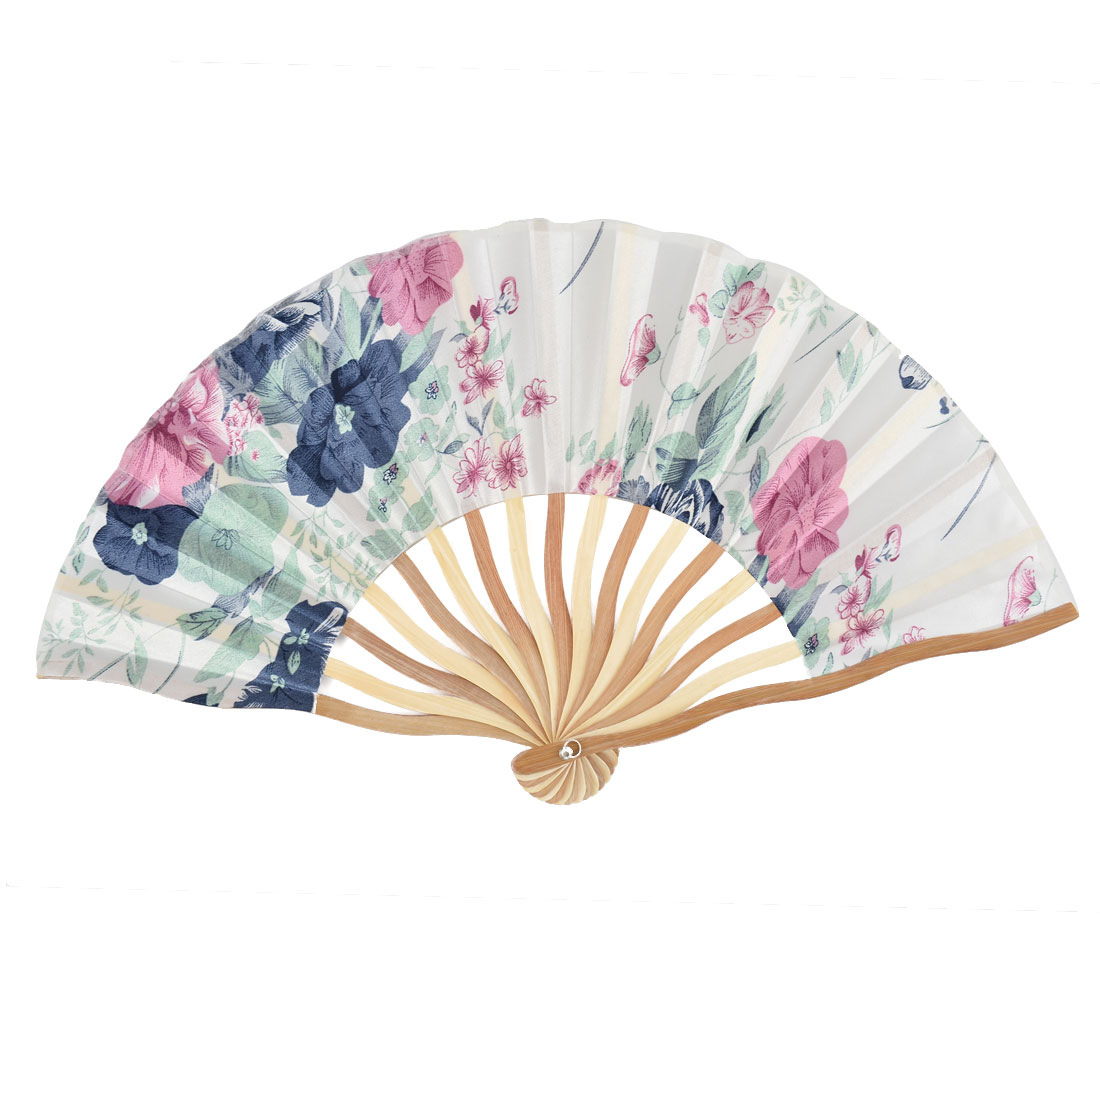 Bamboo Ribs Flower Pattern Summer Cool Portable Foldable Hand Fan White w Case